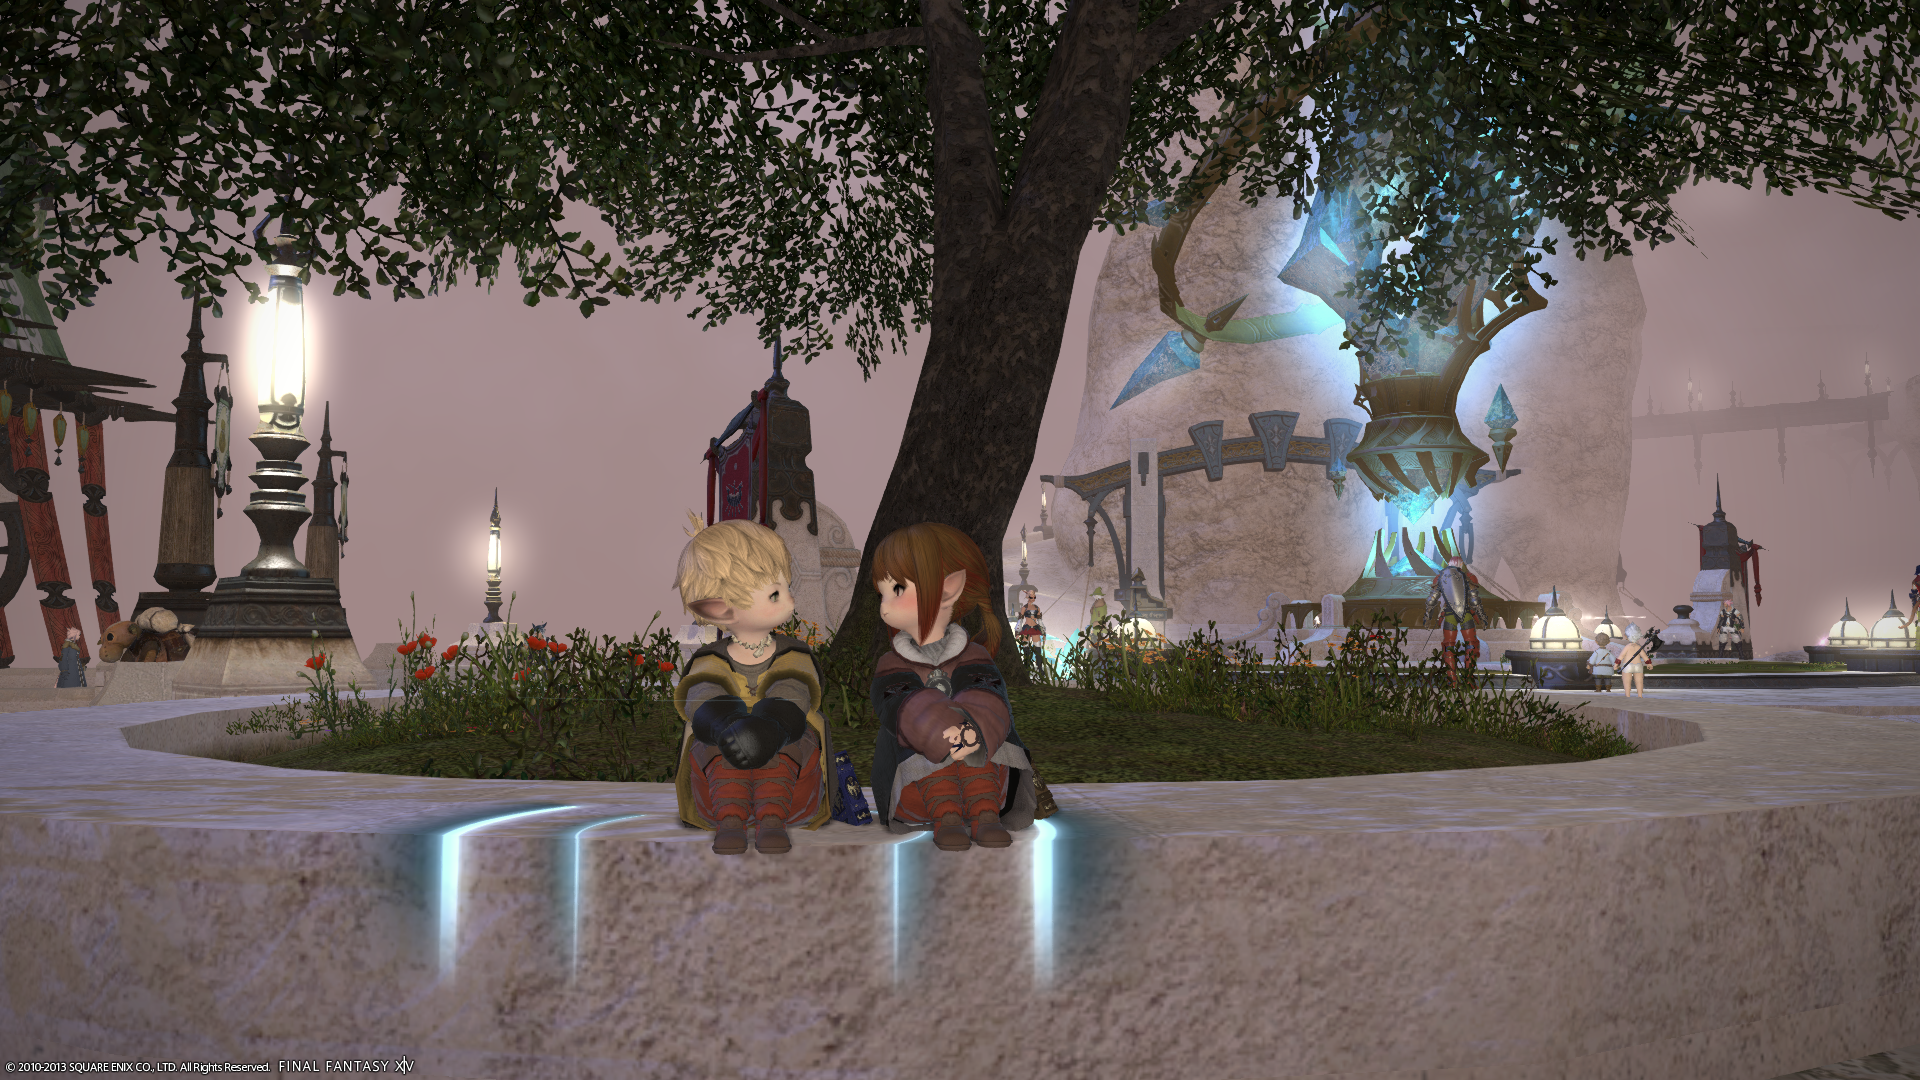 cassalot ffxiv know ears really this used shitpost with just like deal forum over month entire grind inb4 lala thread picture cute lalafell coming that fate posting soon